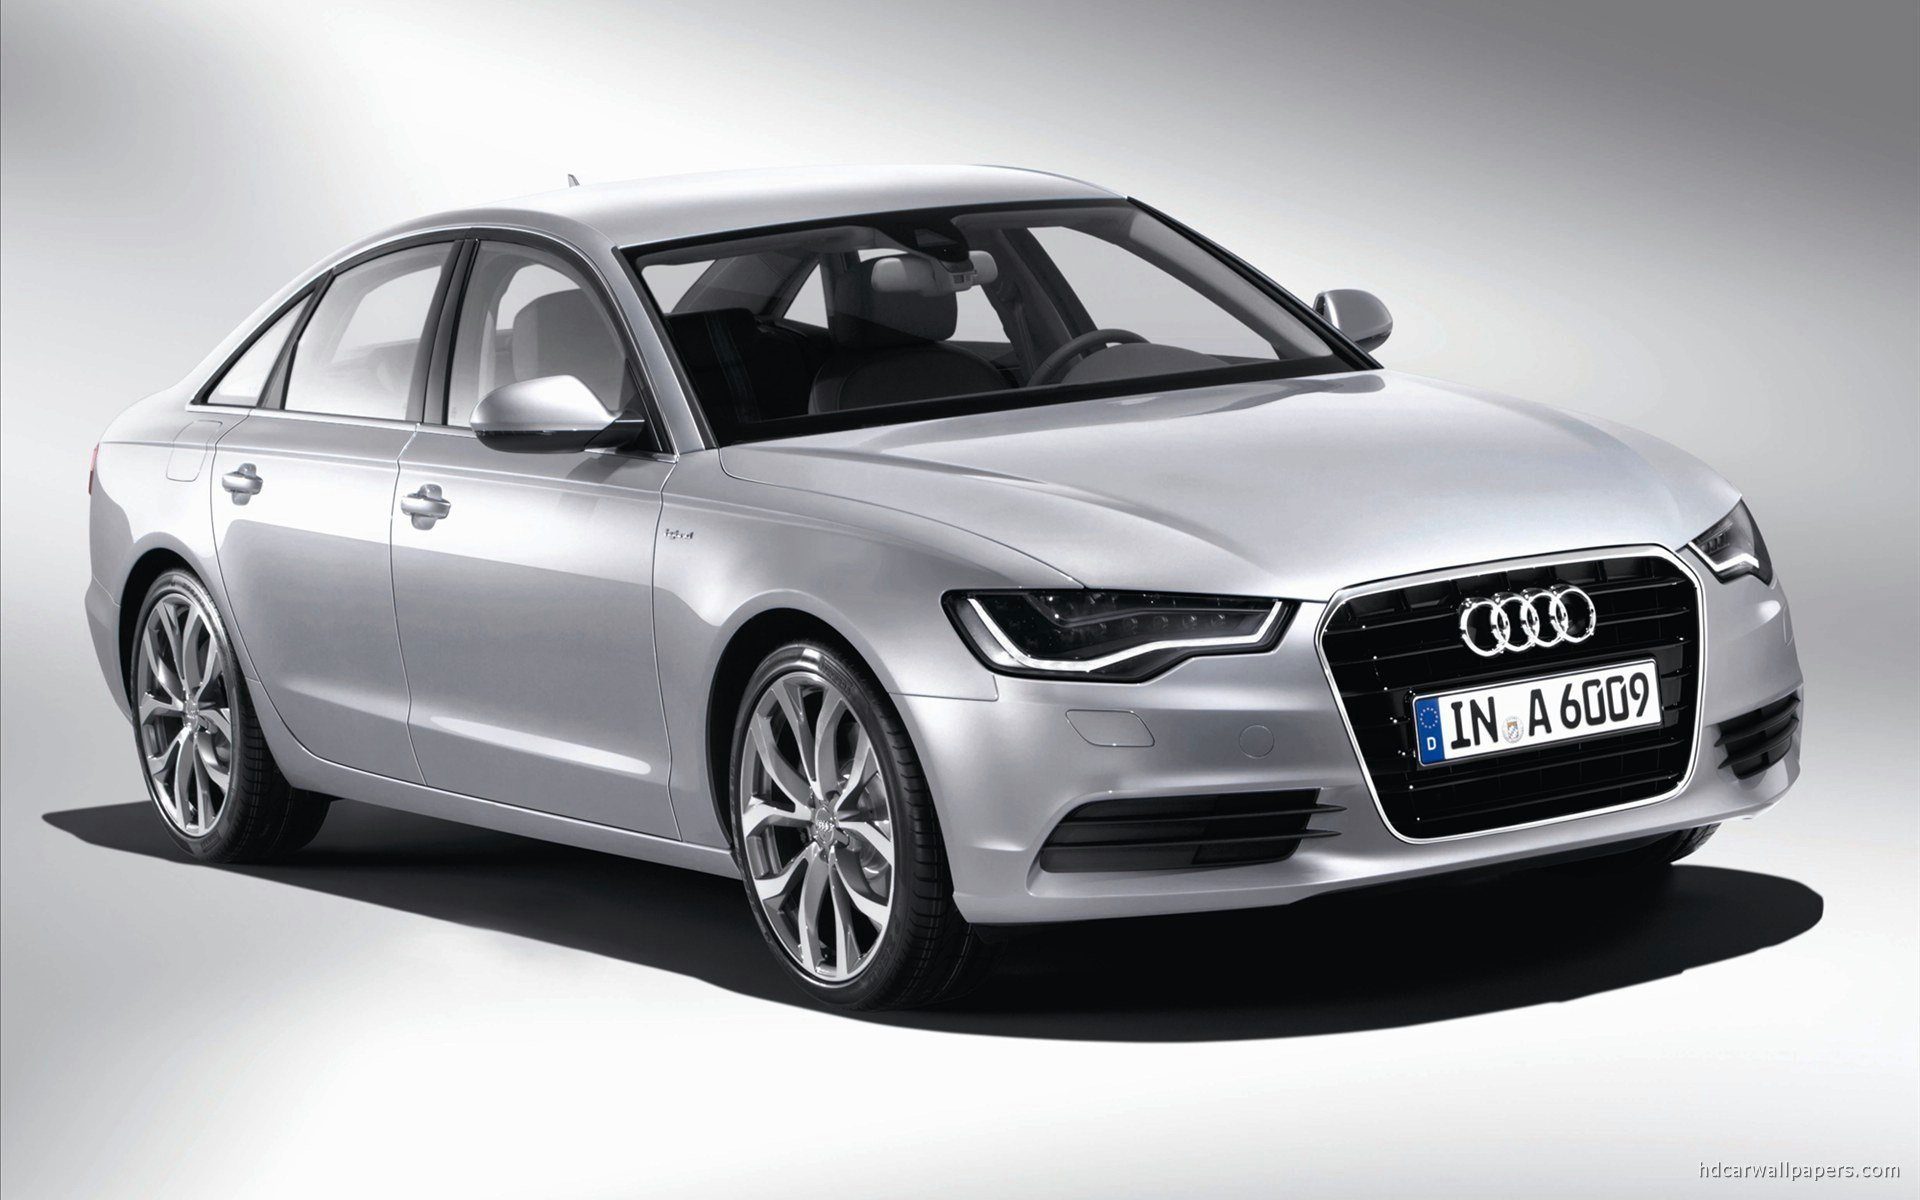 Latest 2012 Audi A6 Hybdid Wallpaper Hd Car Wallpapers Id 1800 Free Download